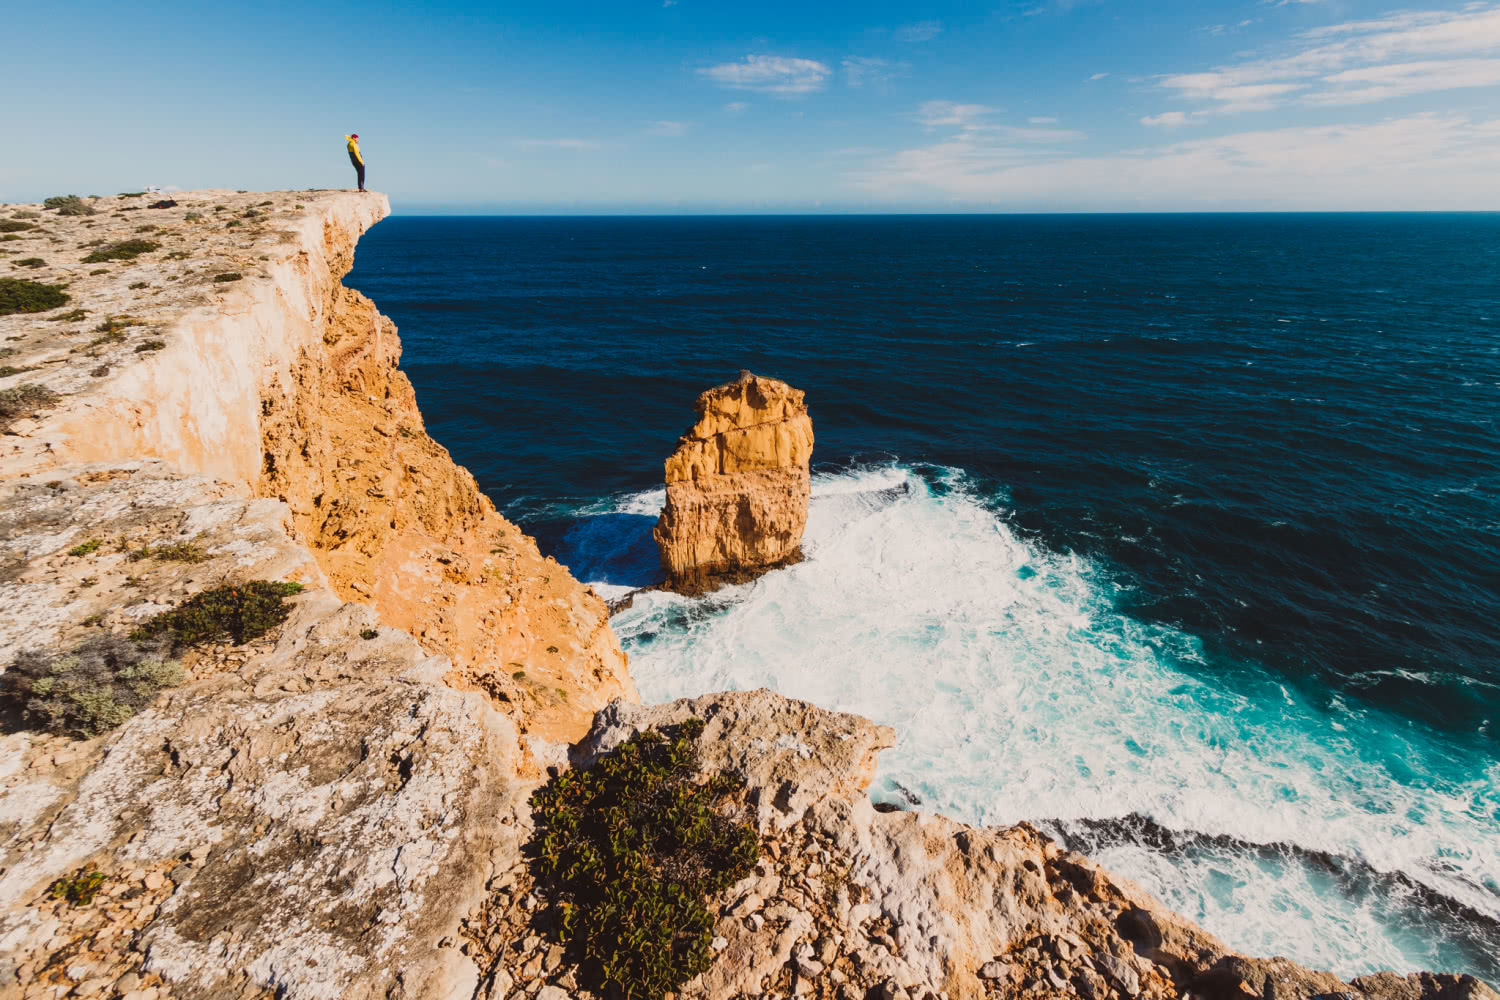 Eyre Peninsula, Photo by Jack Brookes, Great Australian Bight, Elliston, Fight for the Bight, Big Oil Don't Surf, This is not a drill, South Australia